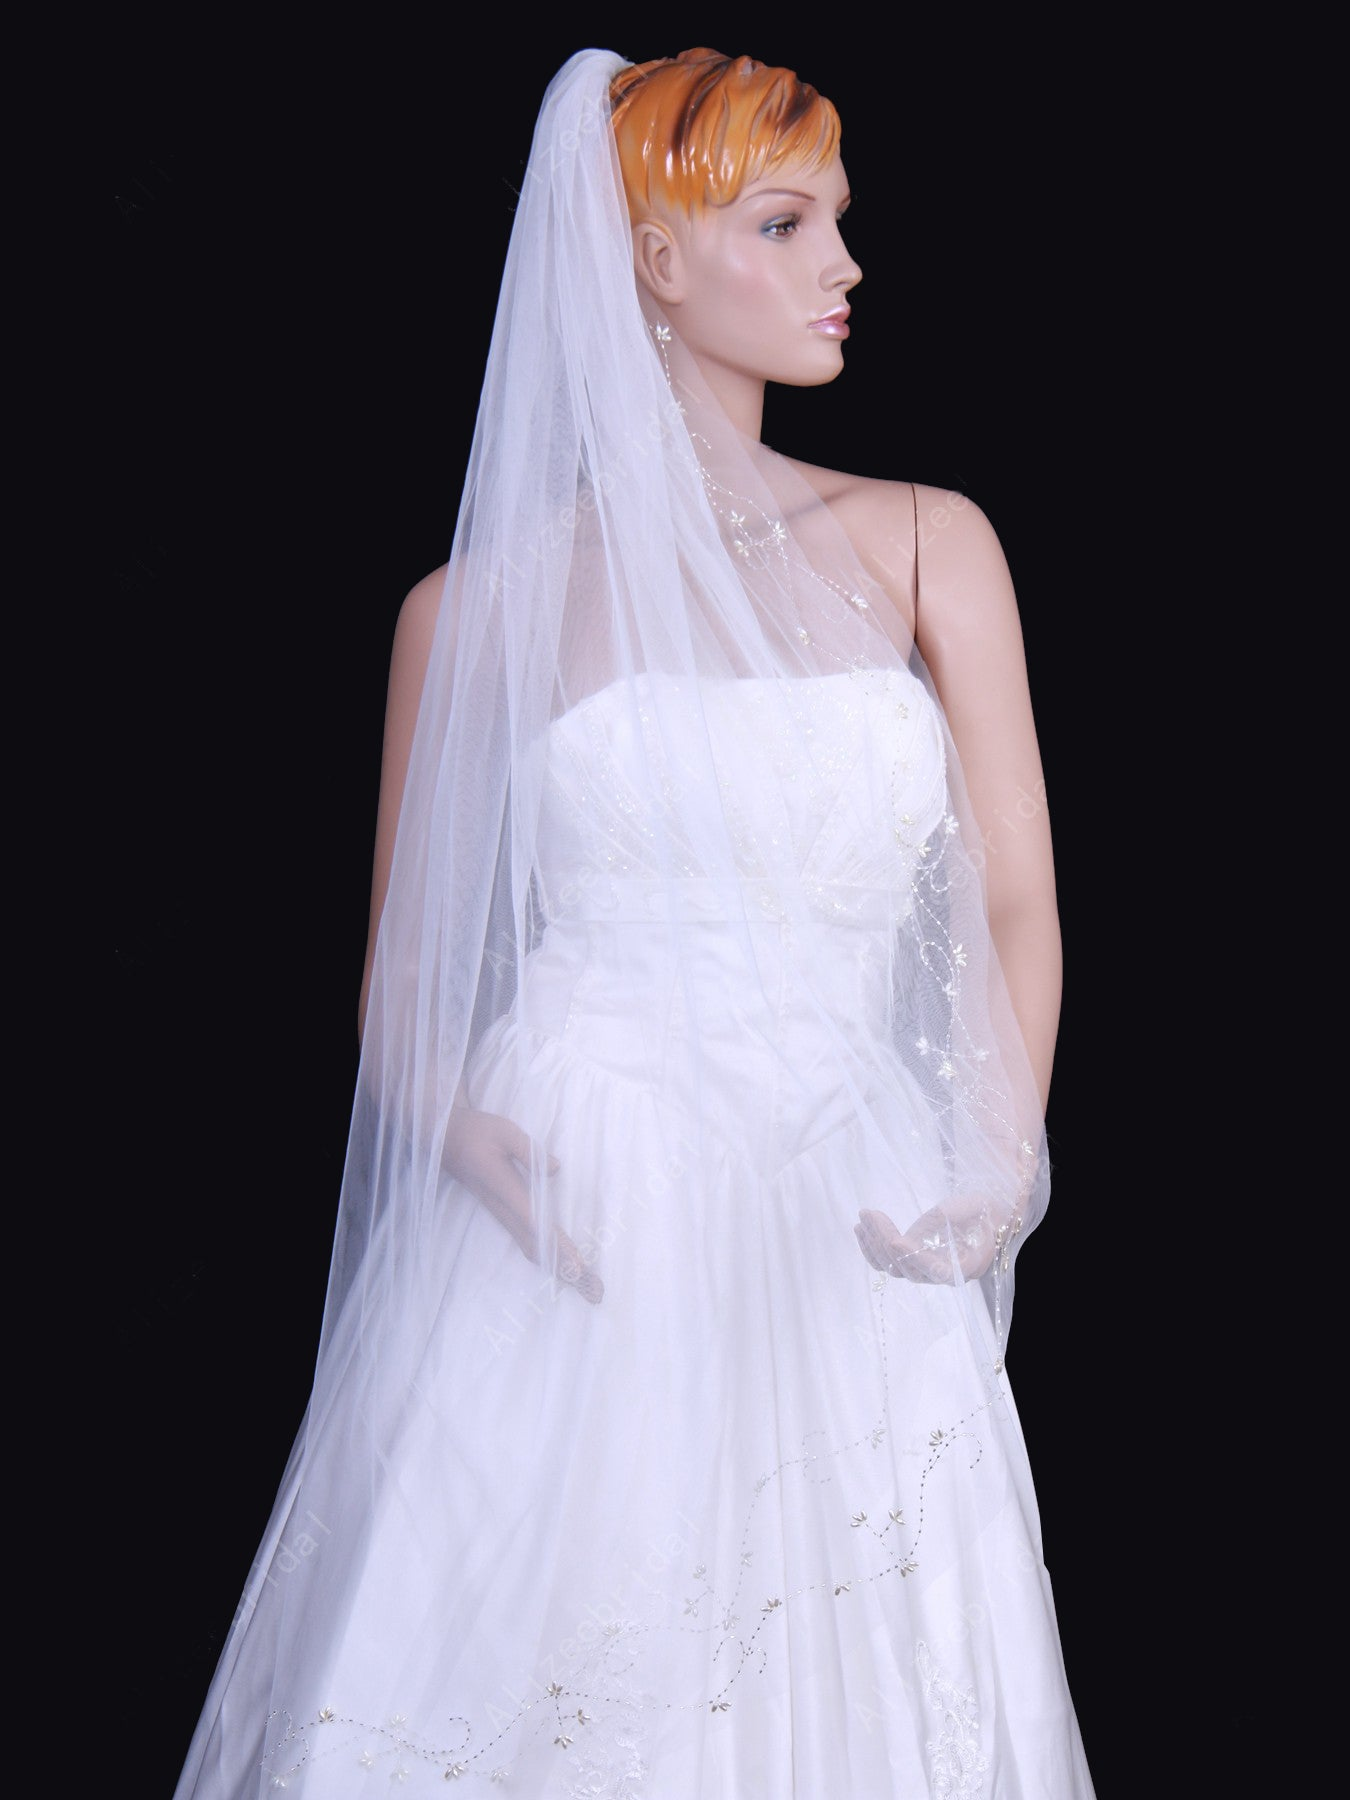 Tulle one tier chapel train wedding veil with embroidery Va019